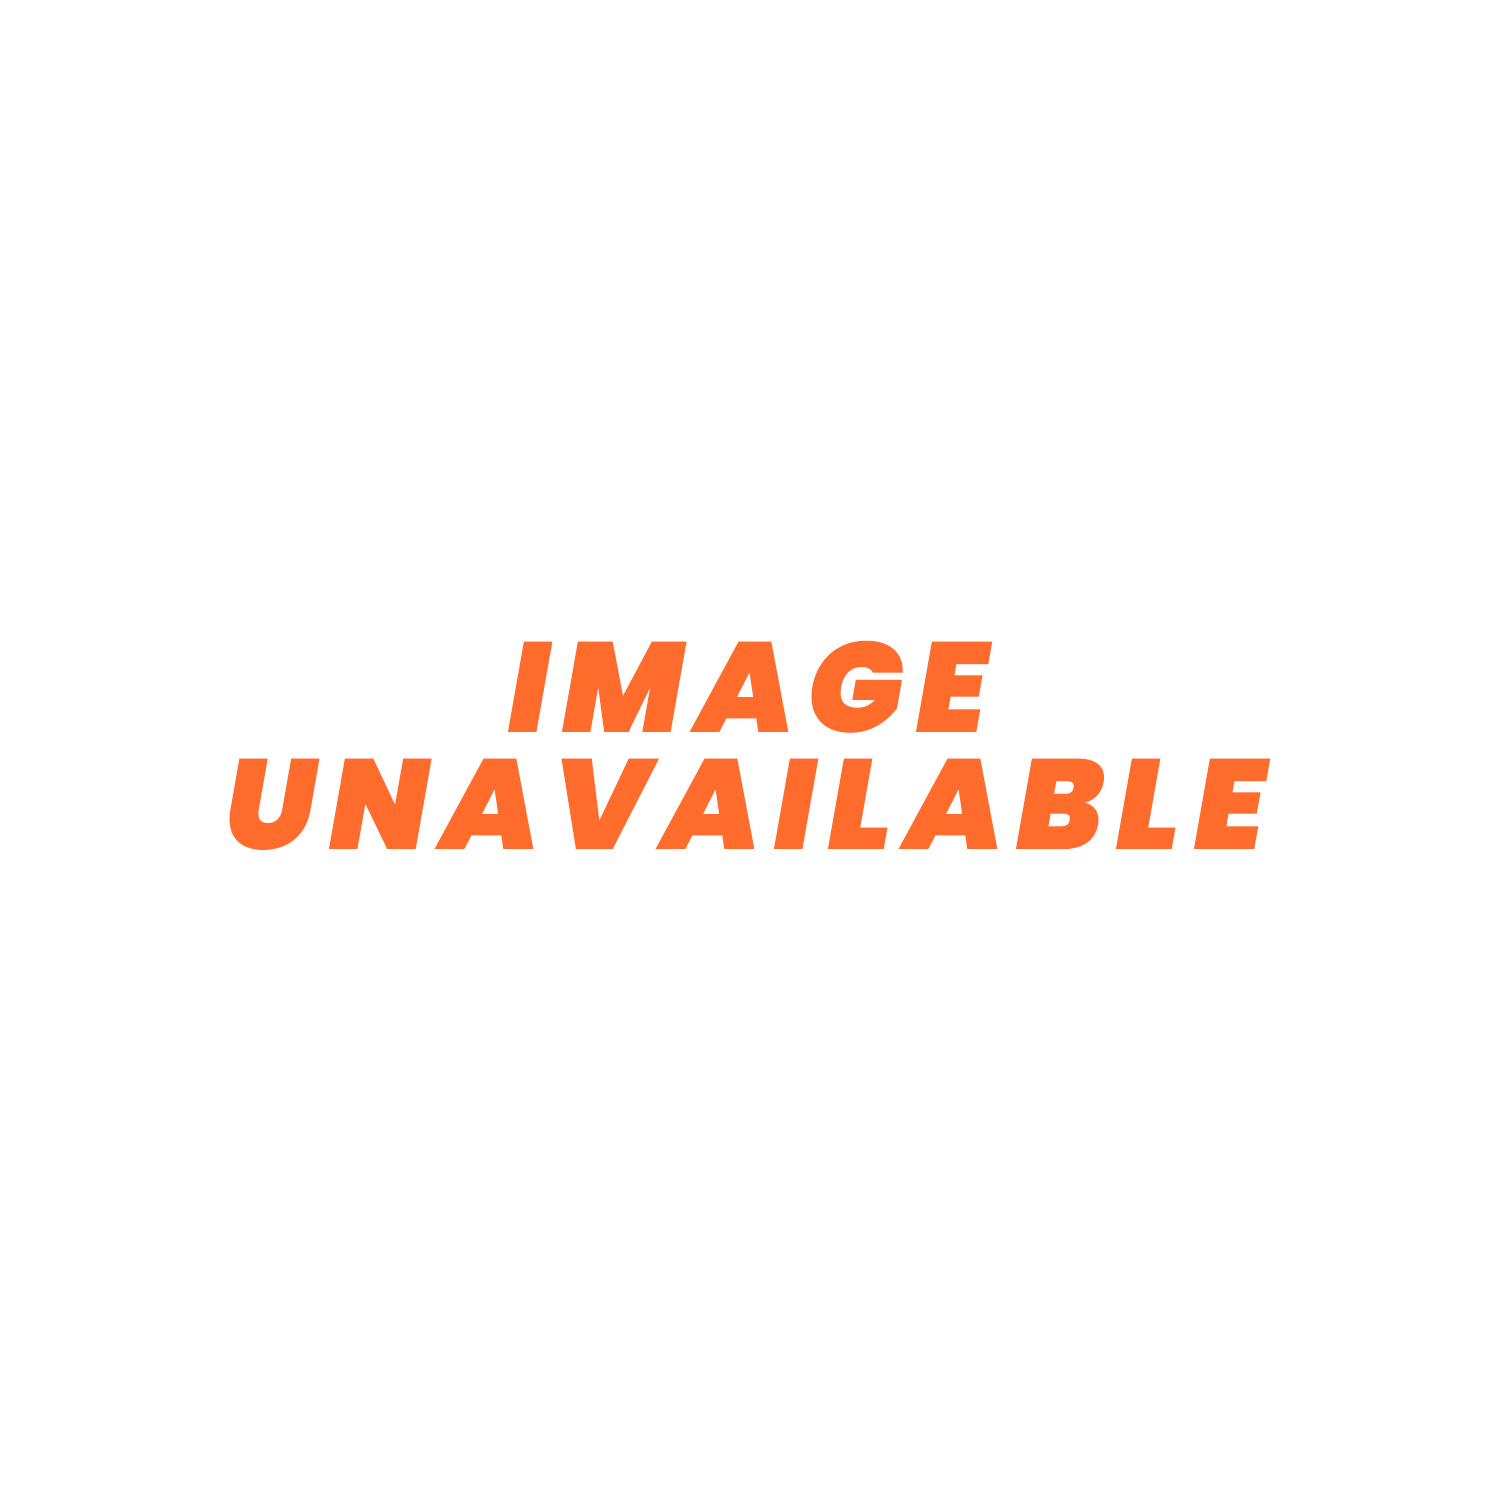 6.1kw Cubby Heater - 12v Back